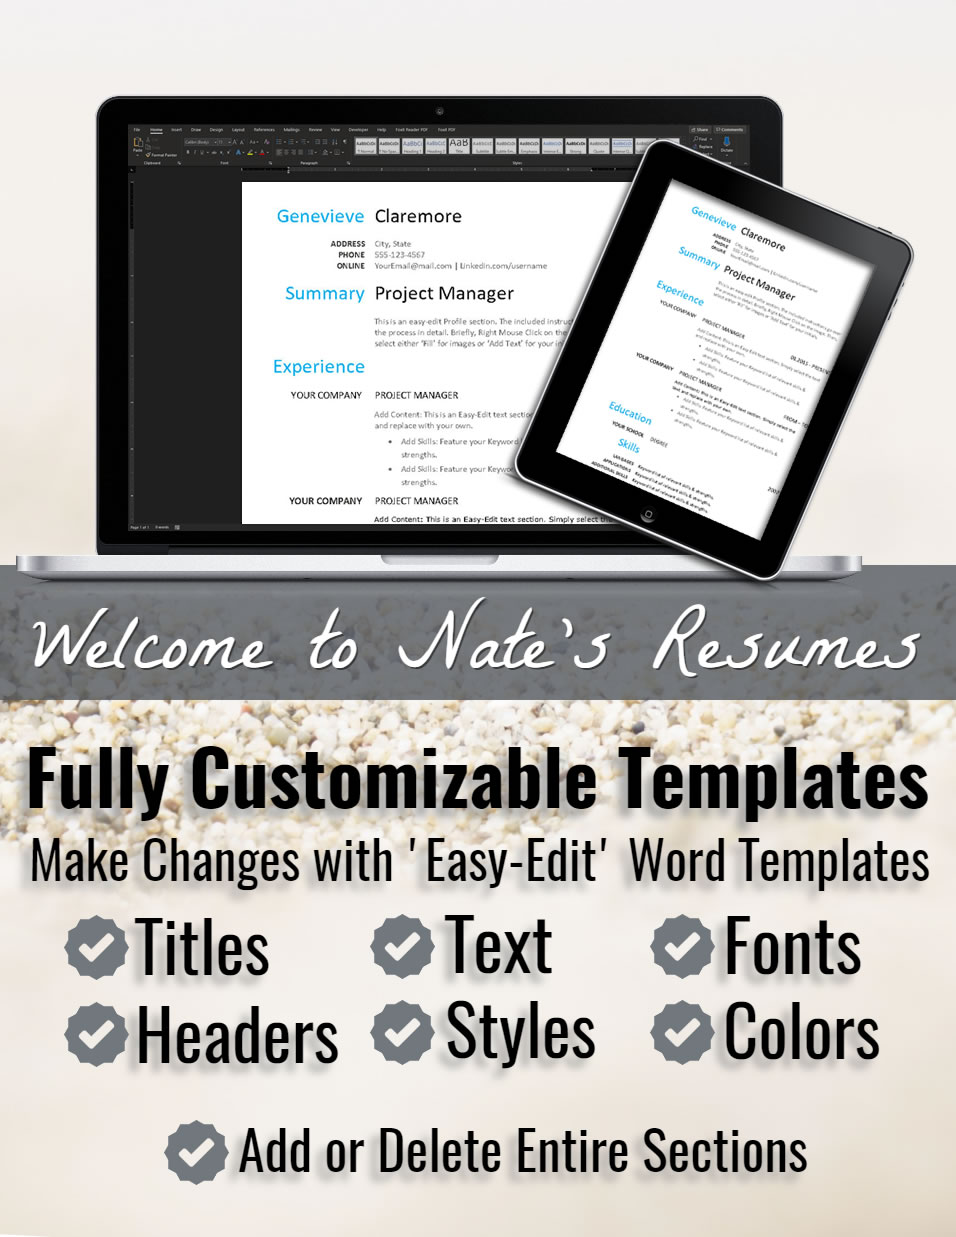 Flow - Make-Easy-Edits-to-Templates-LONG